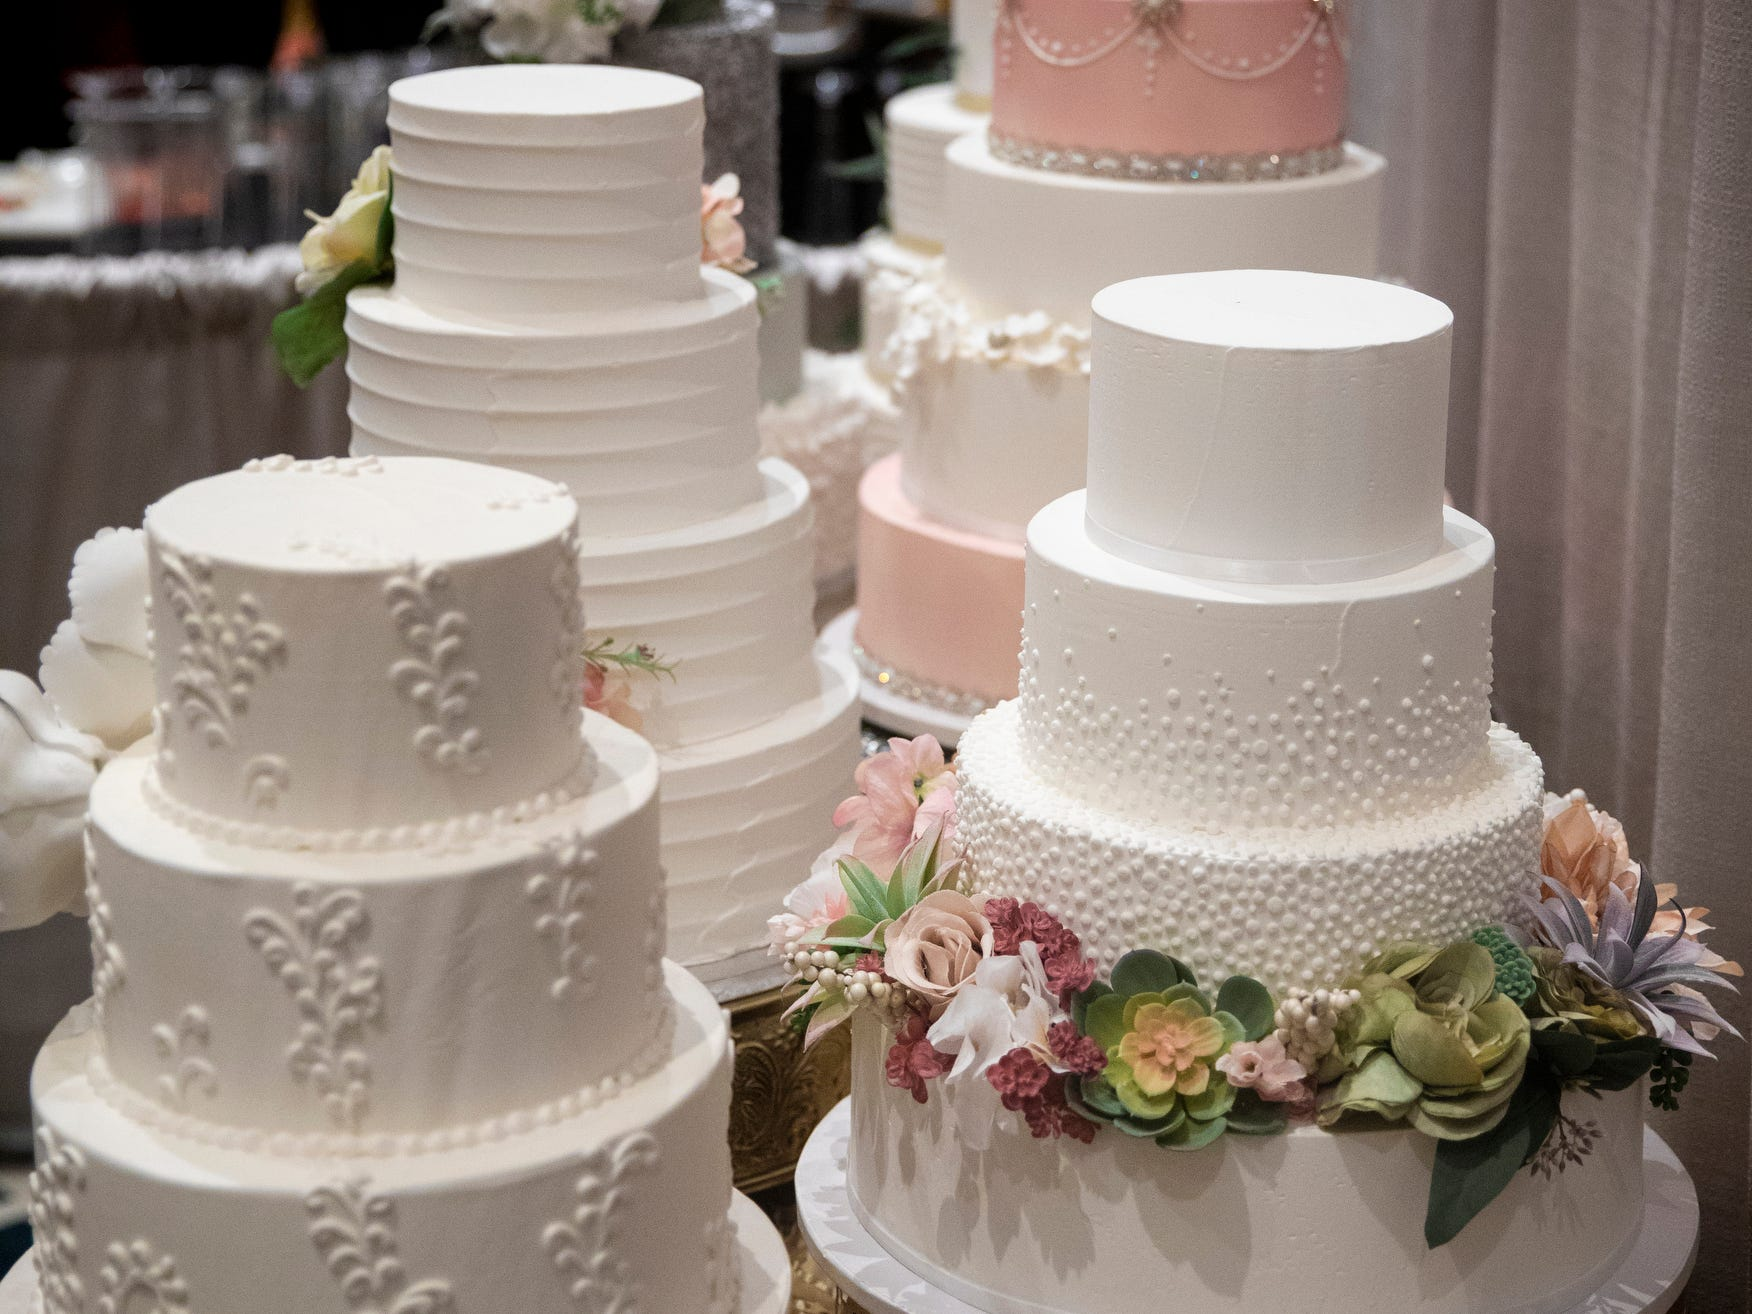 Buttercup Cake House of Covington has numerous wedding cakes on display and offers samples for the Wendy's Bridal Show at the Duke Energy Convention Center Saturday, January 5, 2019 in Downtown Cincinnati.